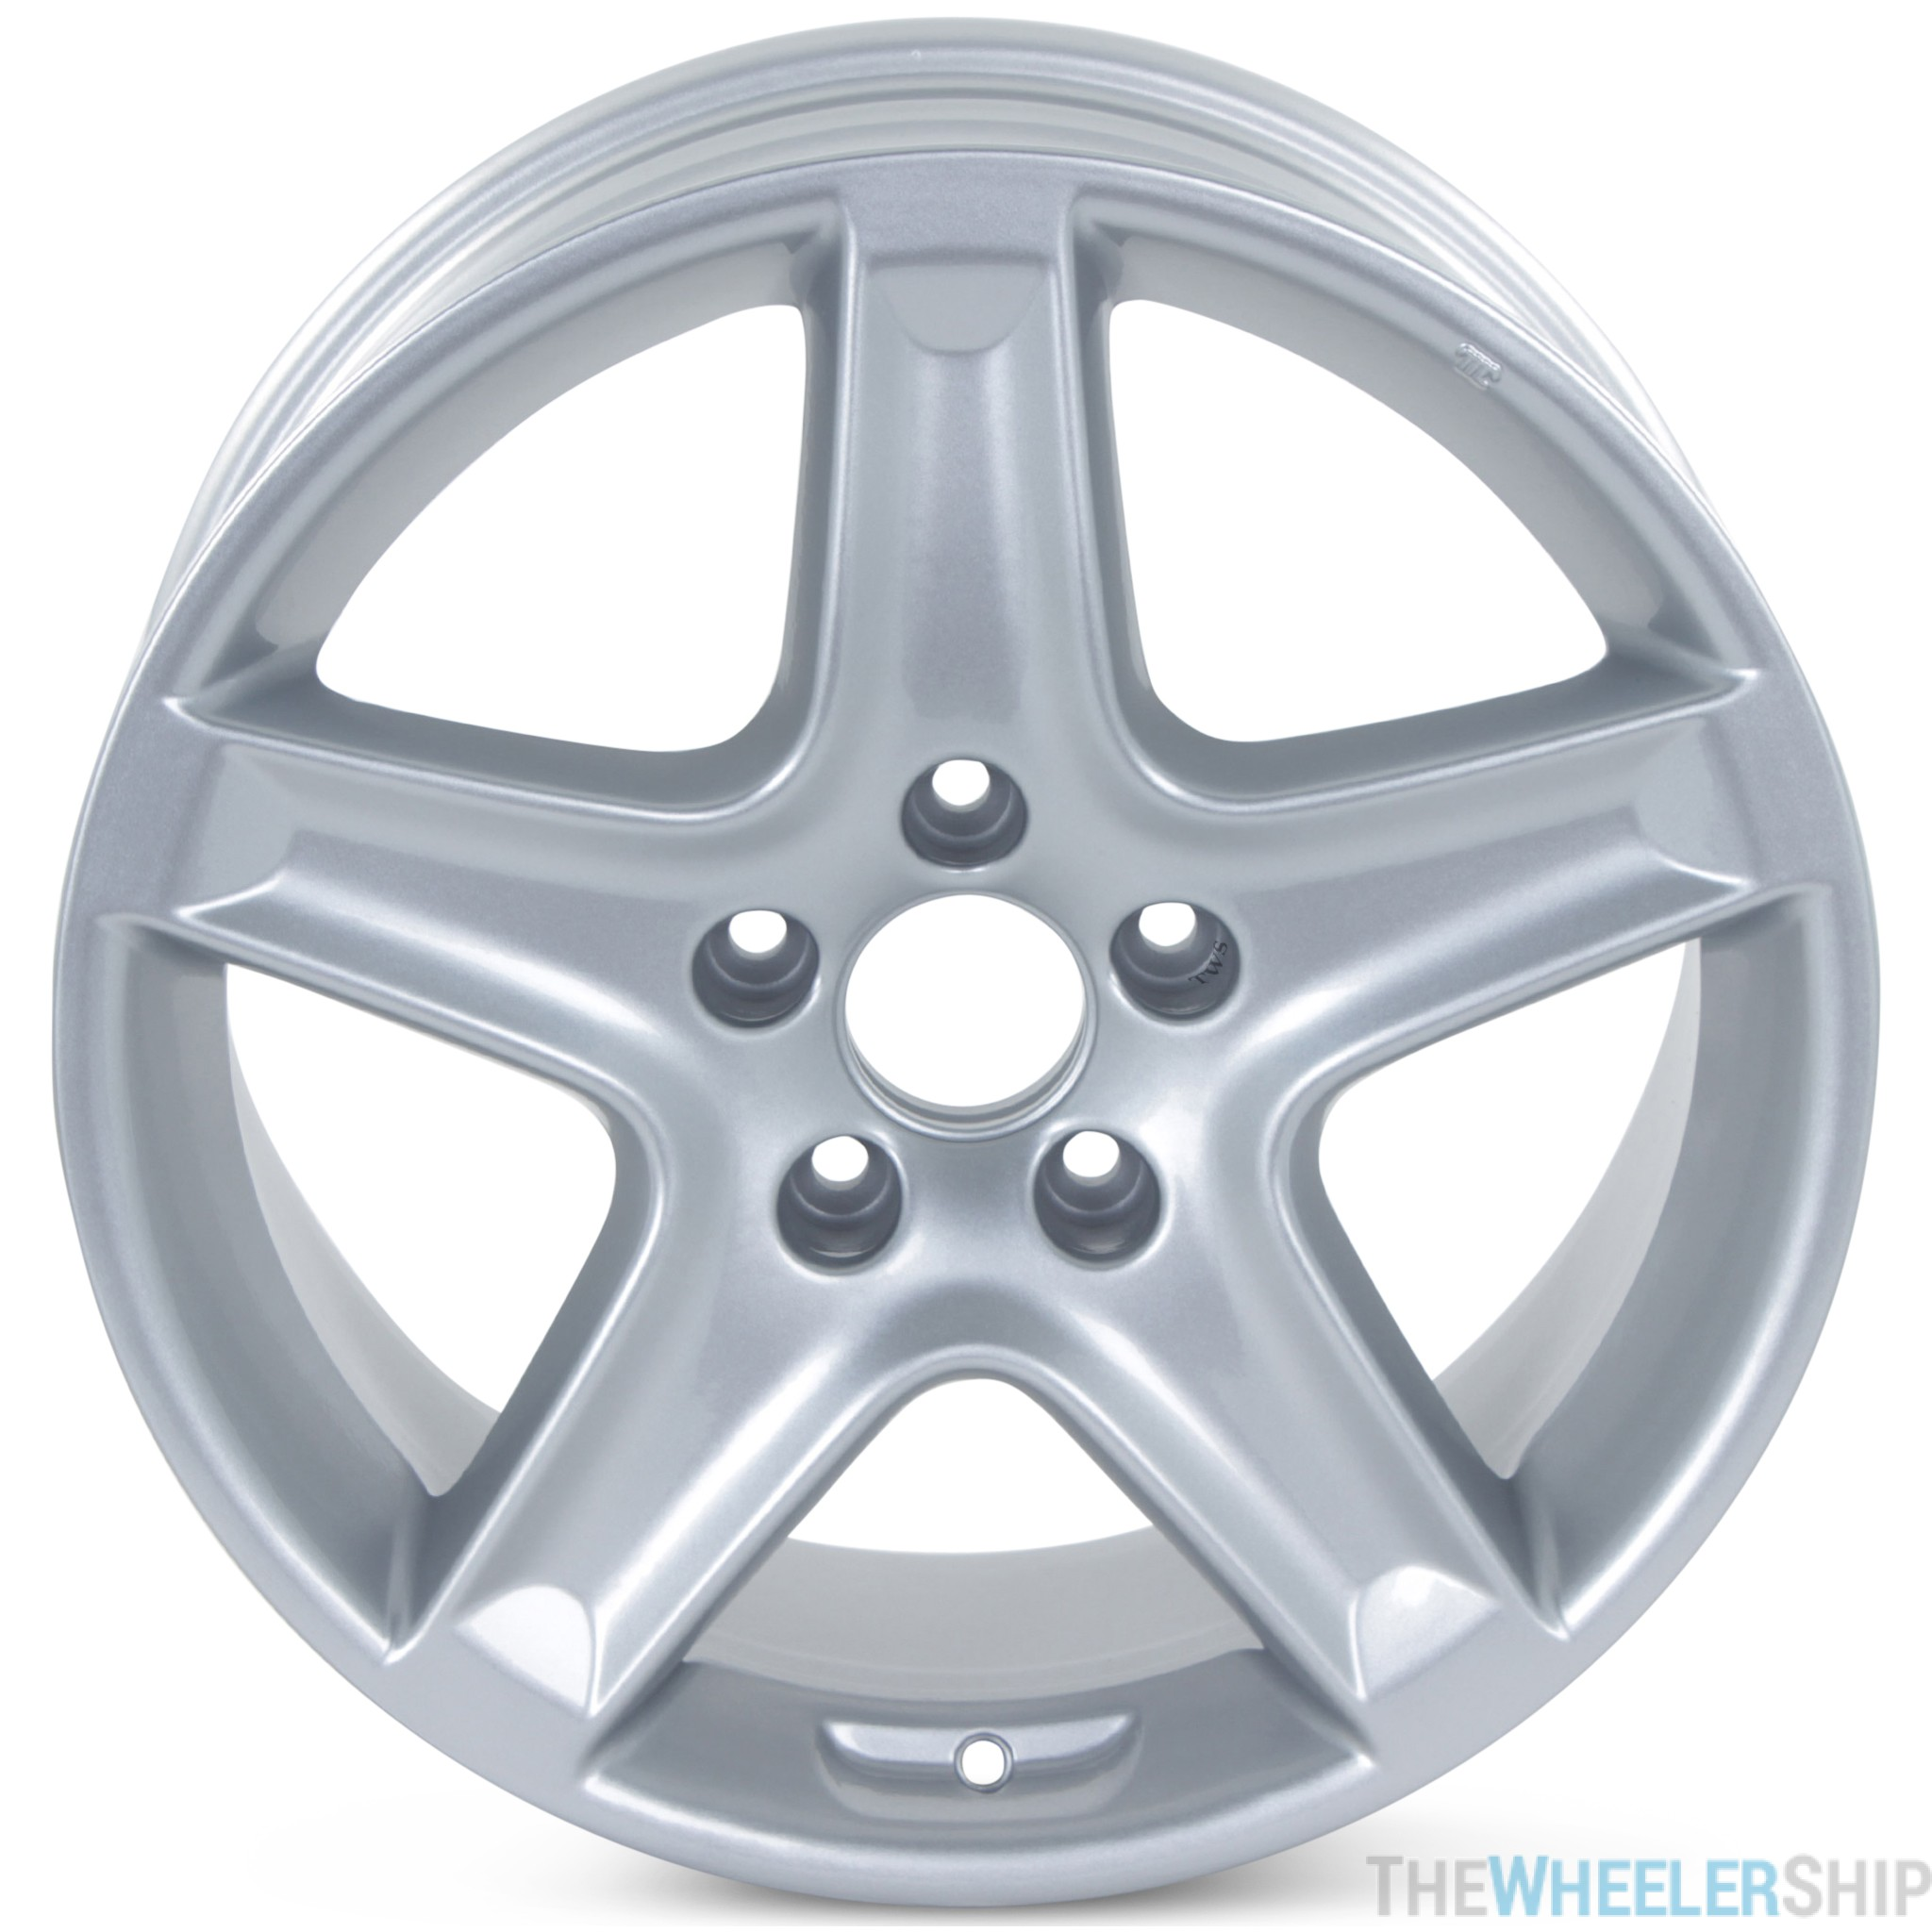 2005-2006 Acura TL Wheels For Sale